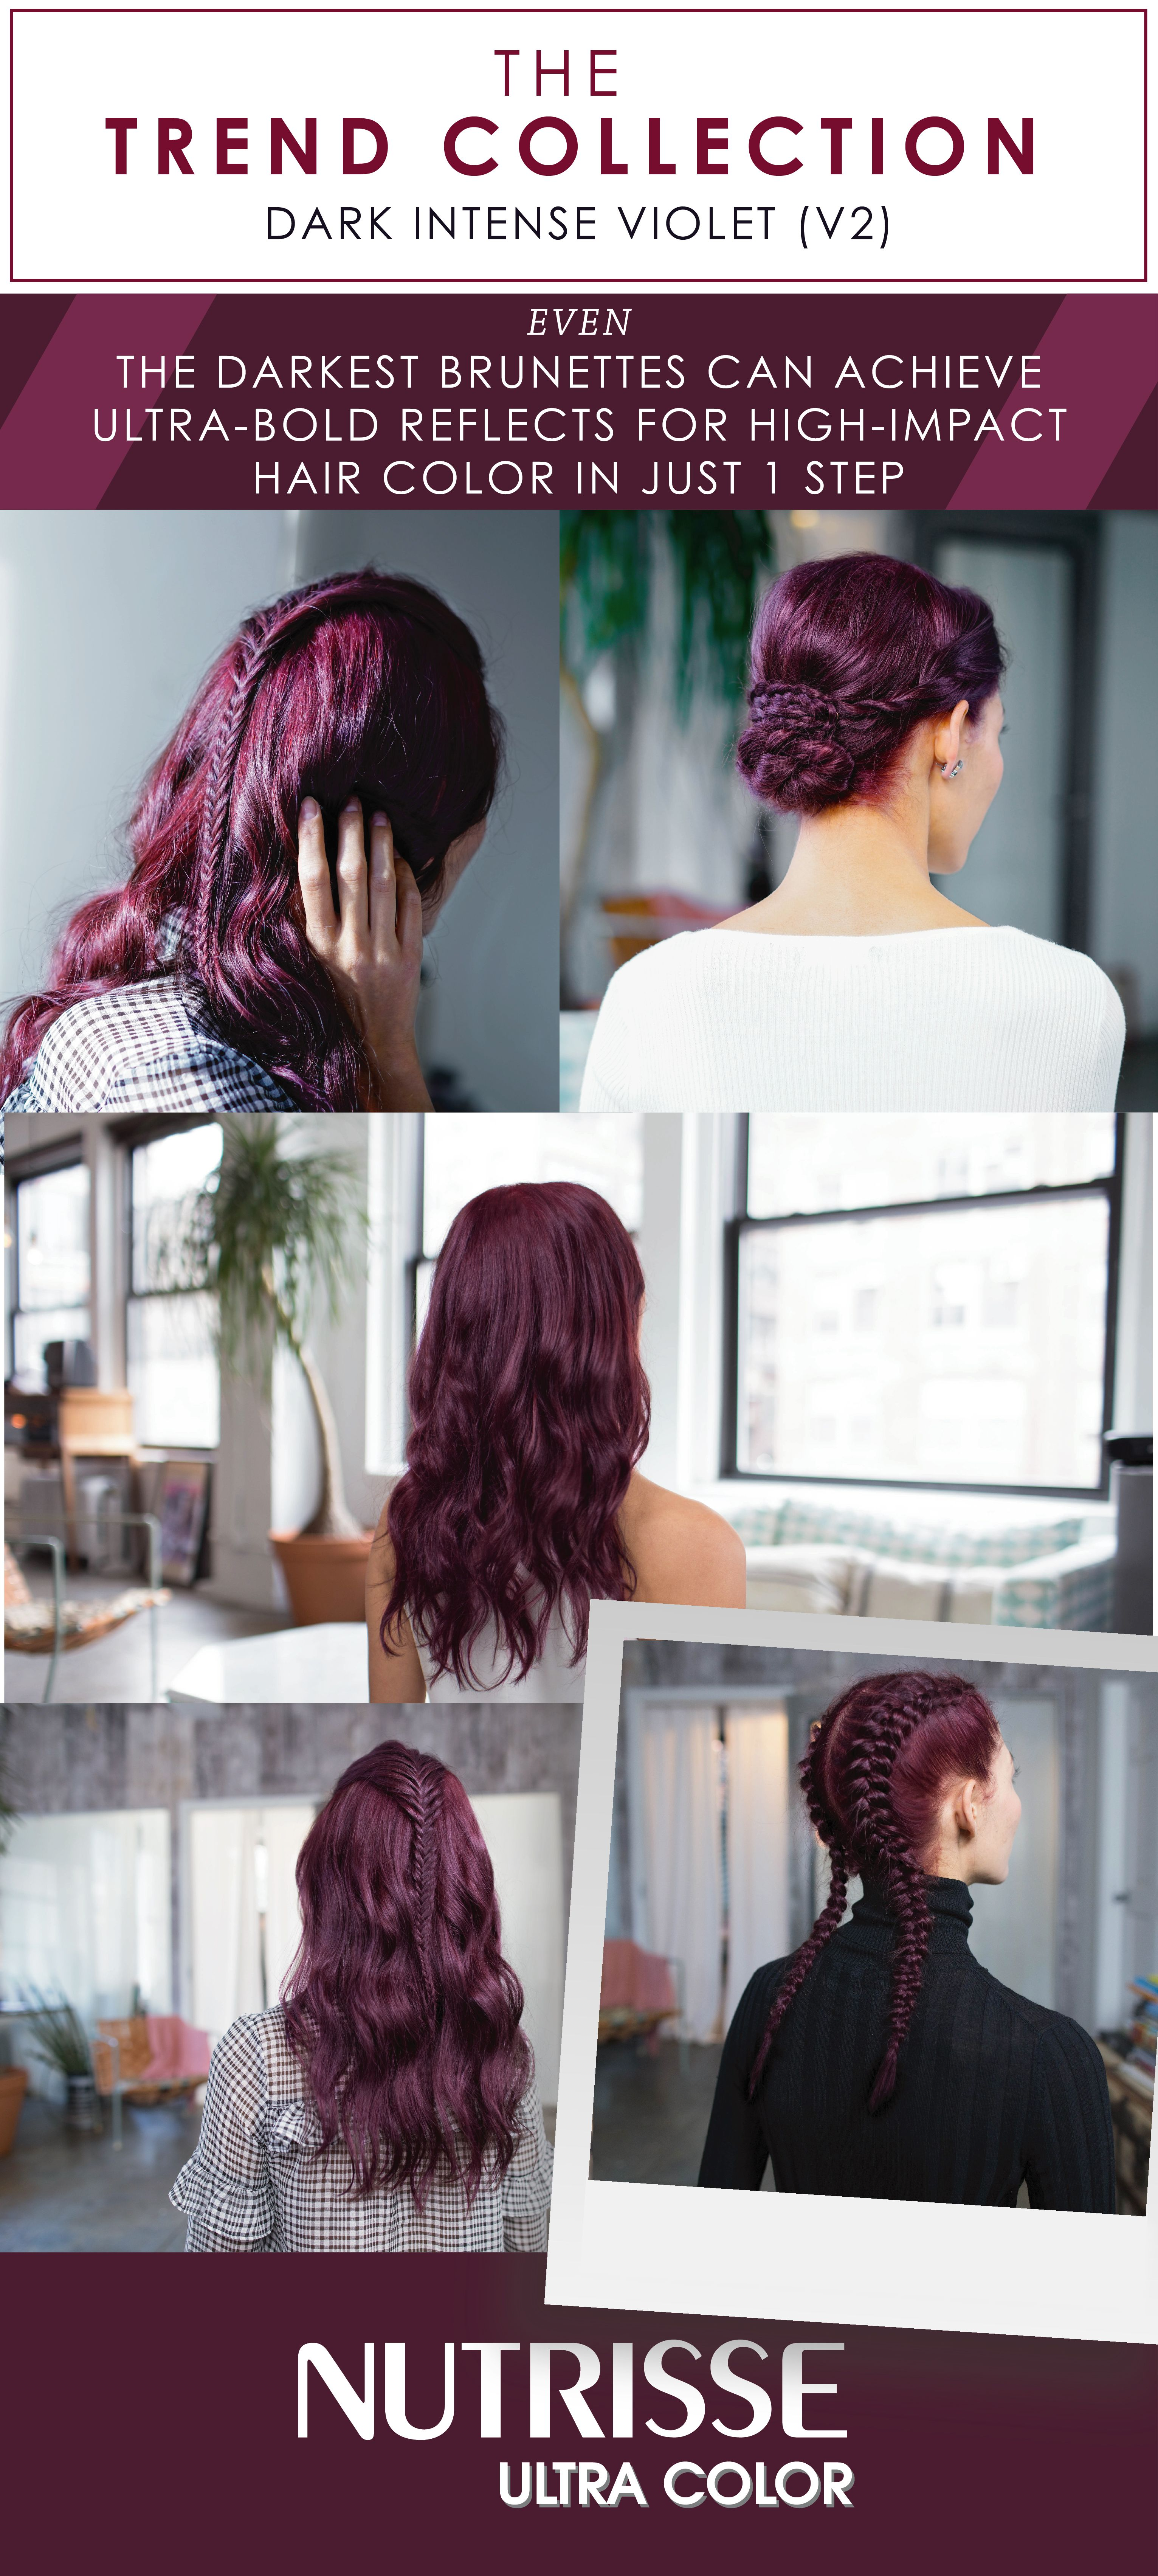 Make A Bold Statement With The Hottest Hair Color Shades Of The